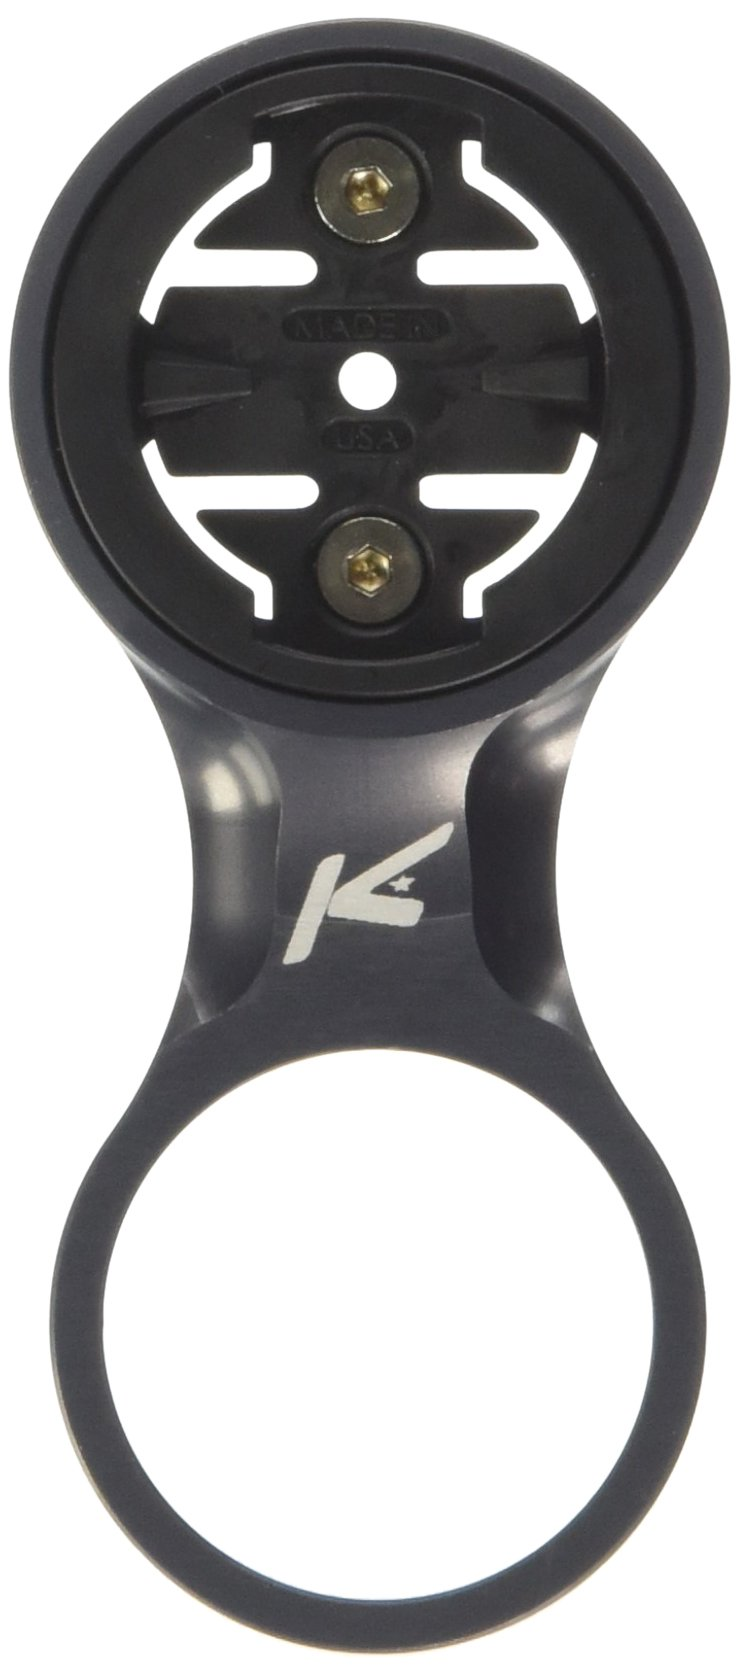 K-Edge Support de Potence Compteur GARMIN EDGE Fixe product image